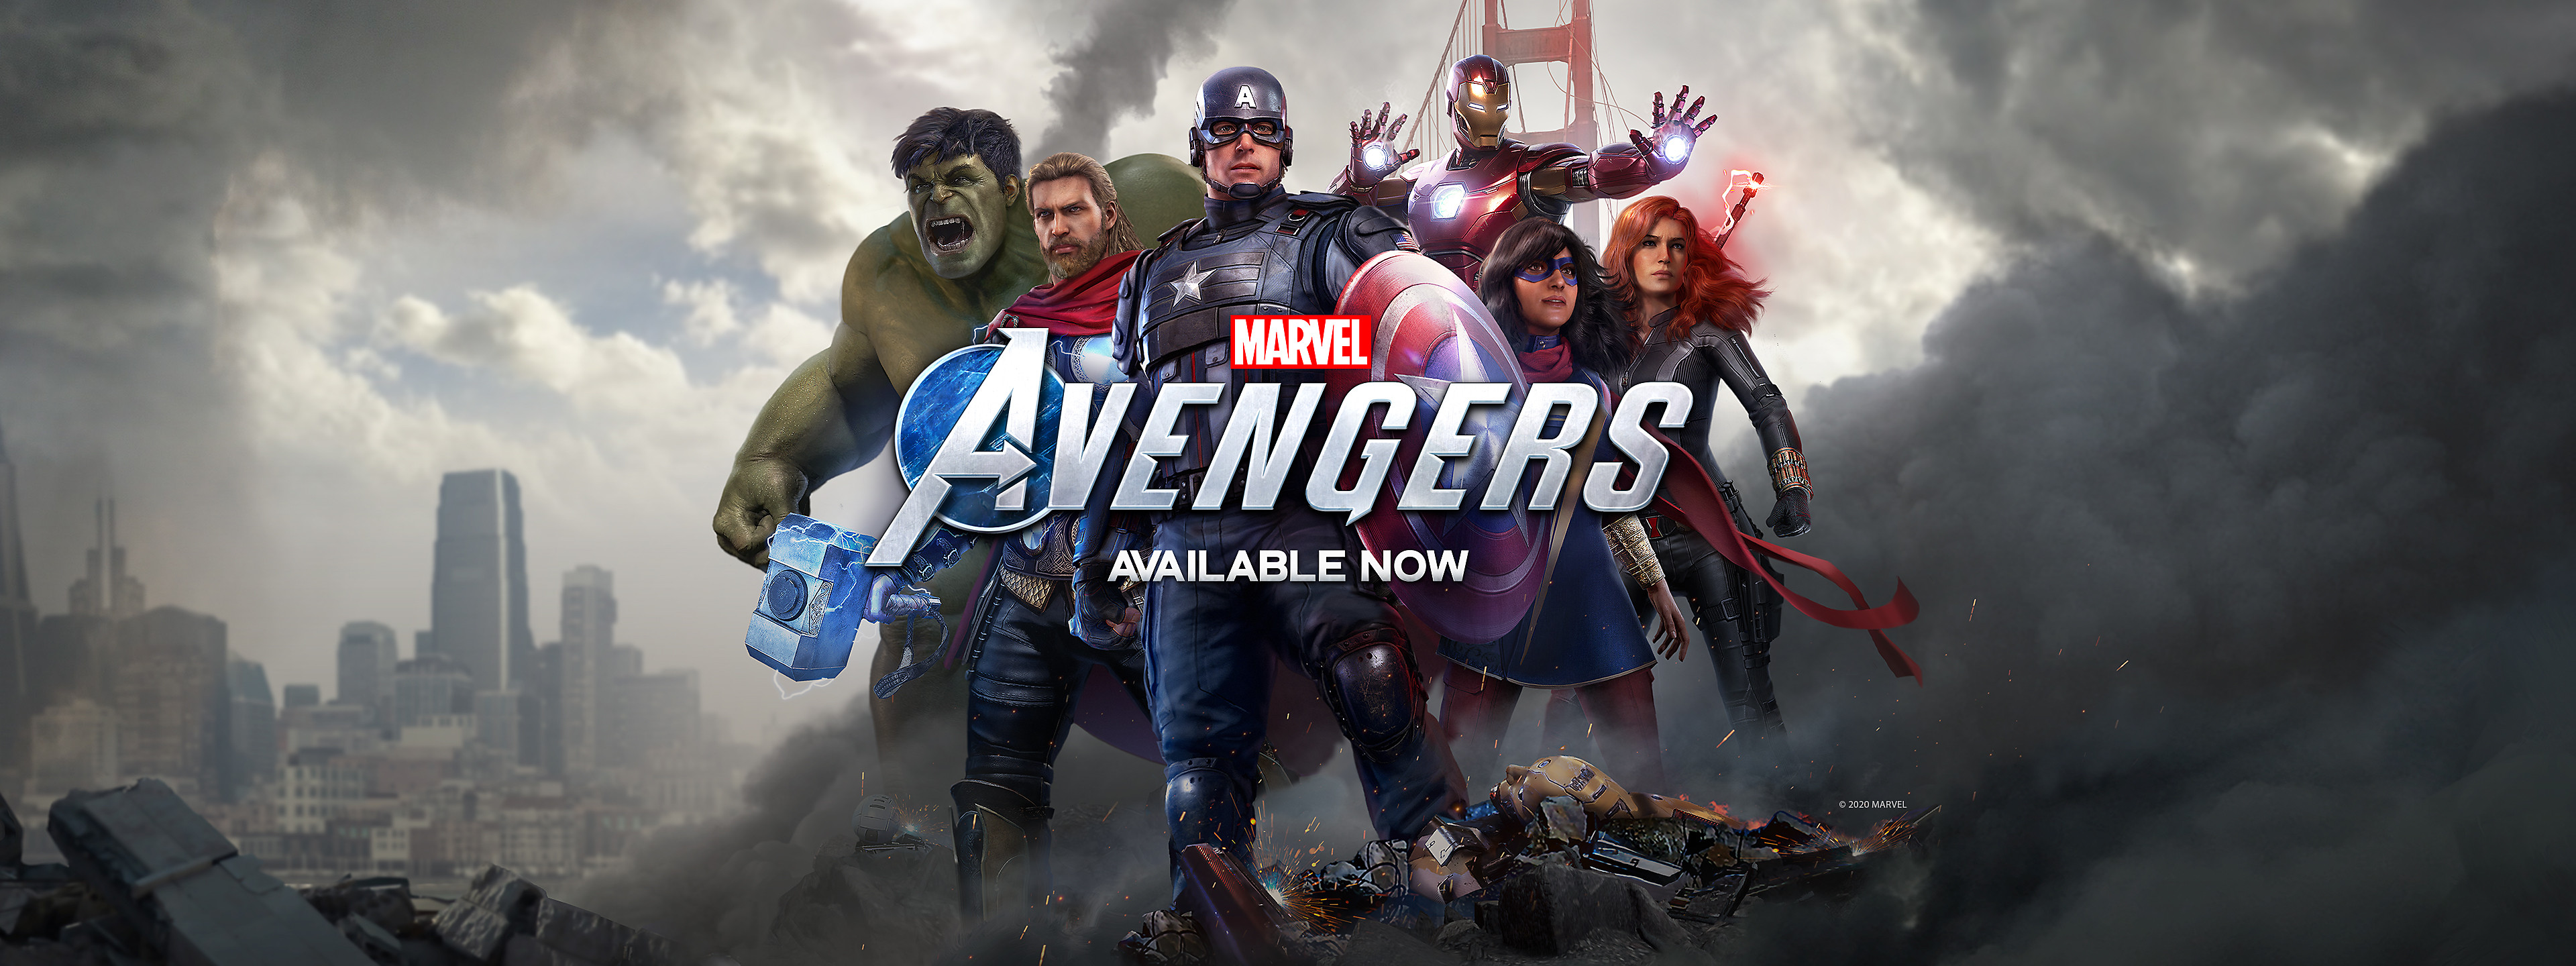 Marvel's Avengers - Pre-Order Now for Beta Access